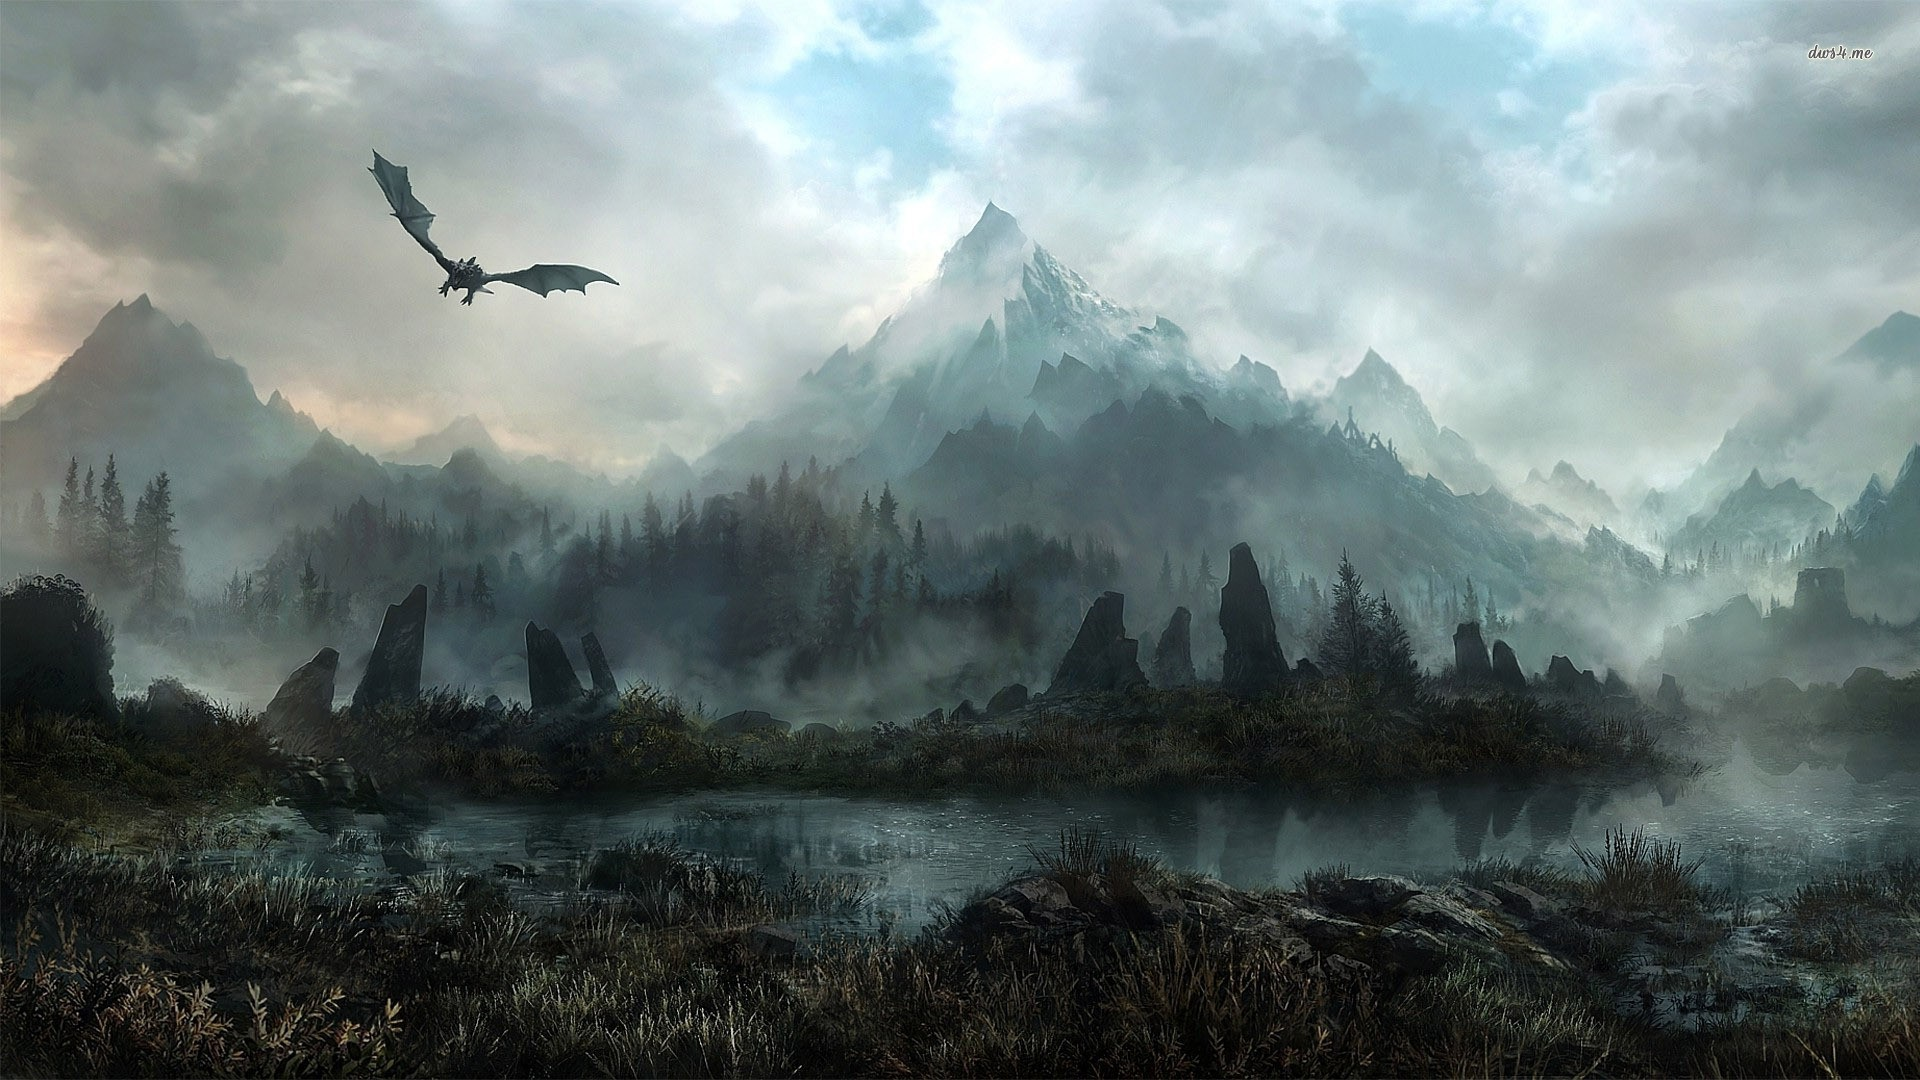 skyrim hd wallpaper ·① download free beautiful high resolution